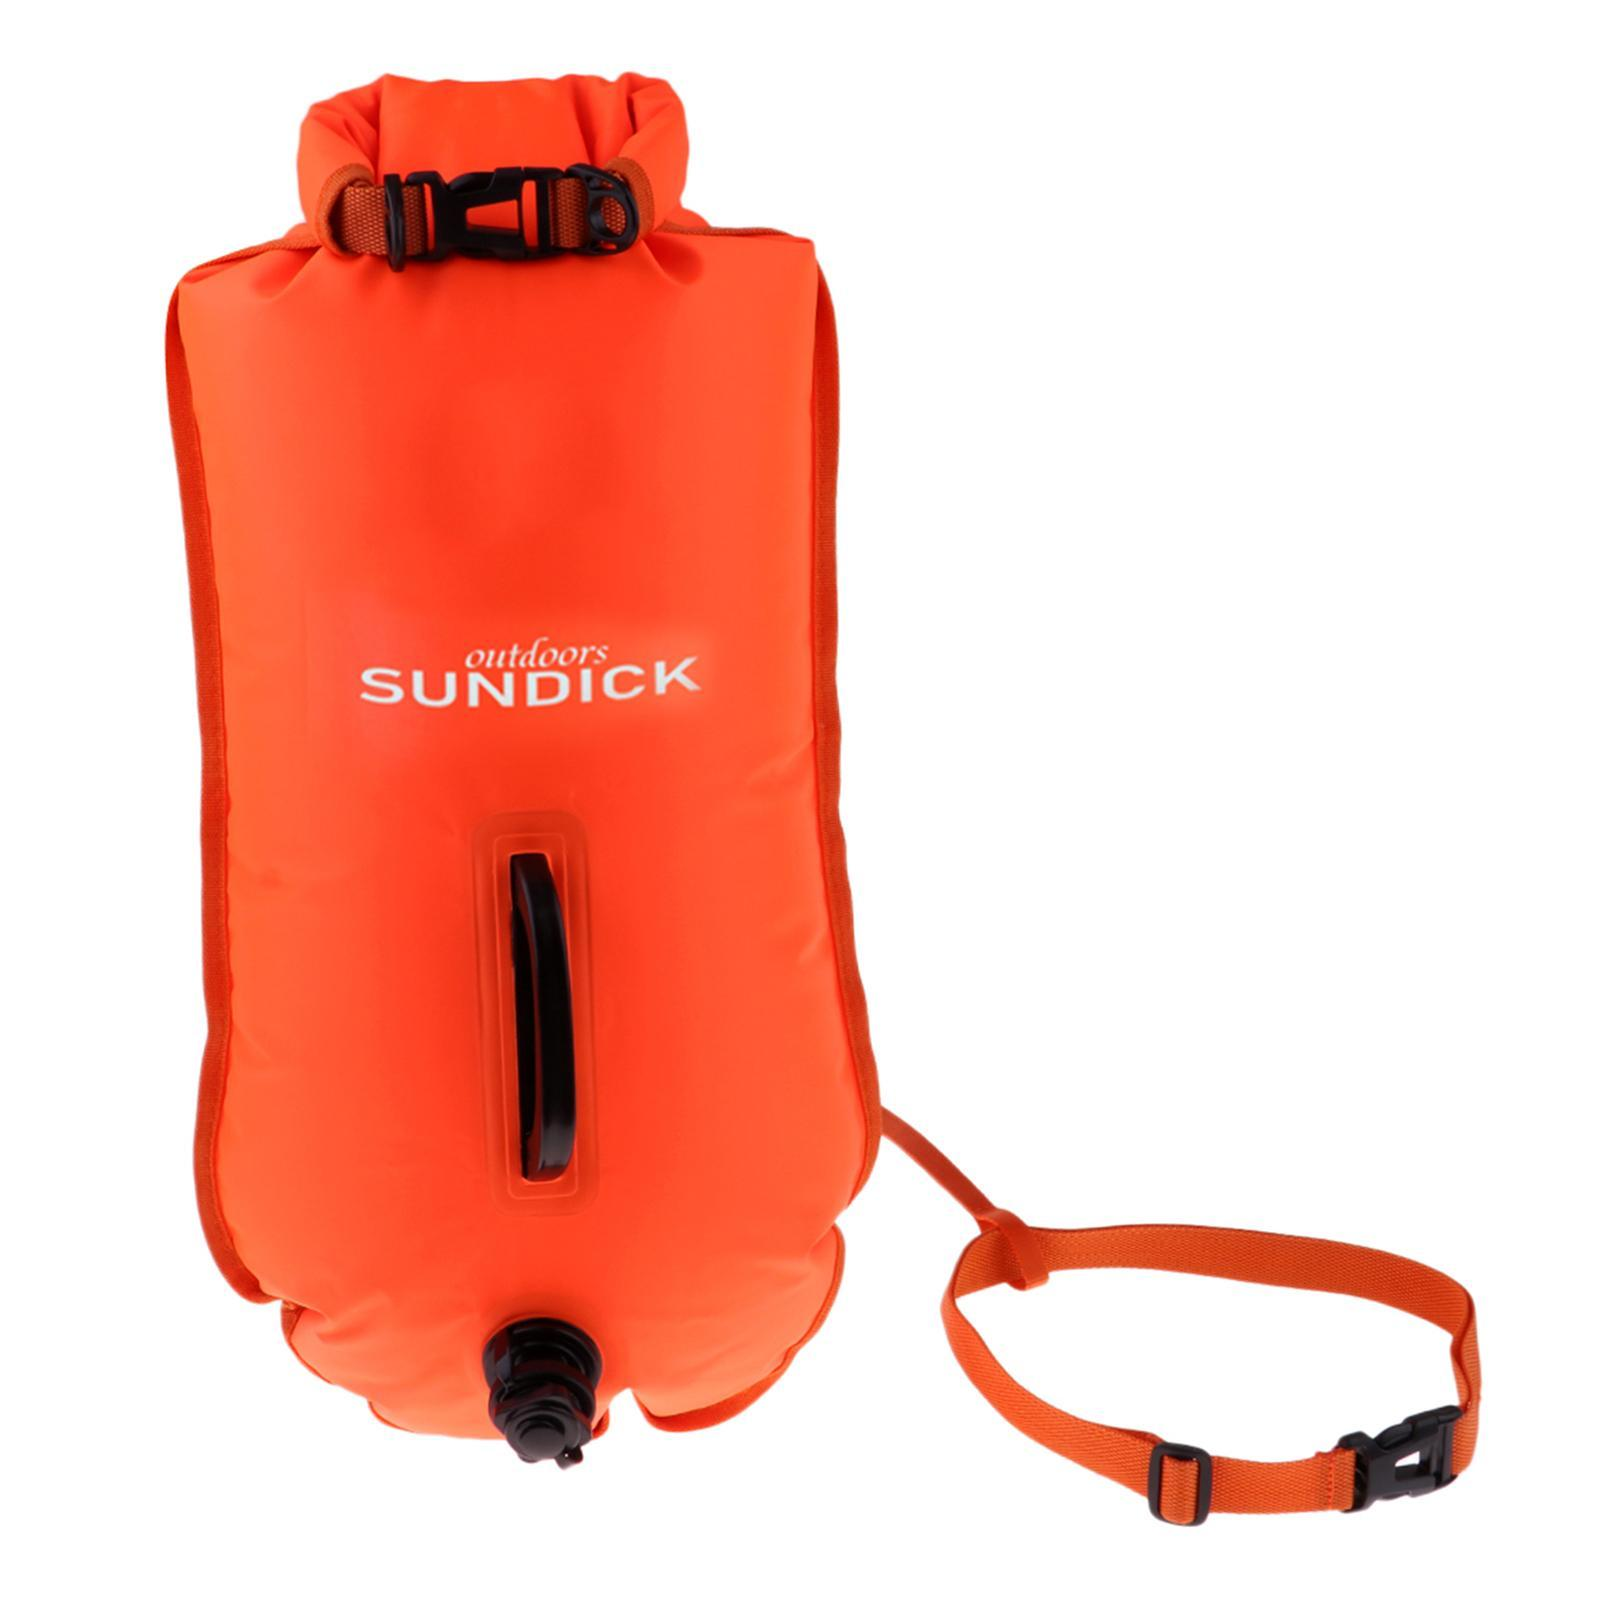 Safety-Swim-Buoy-Dry-Bag-Tow-Float-for-Open-Water-Swimmer-Swimming-Training thumbnail 3